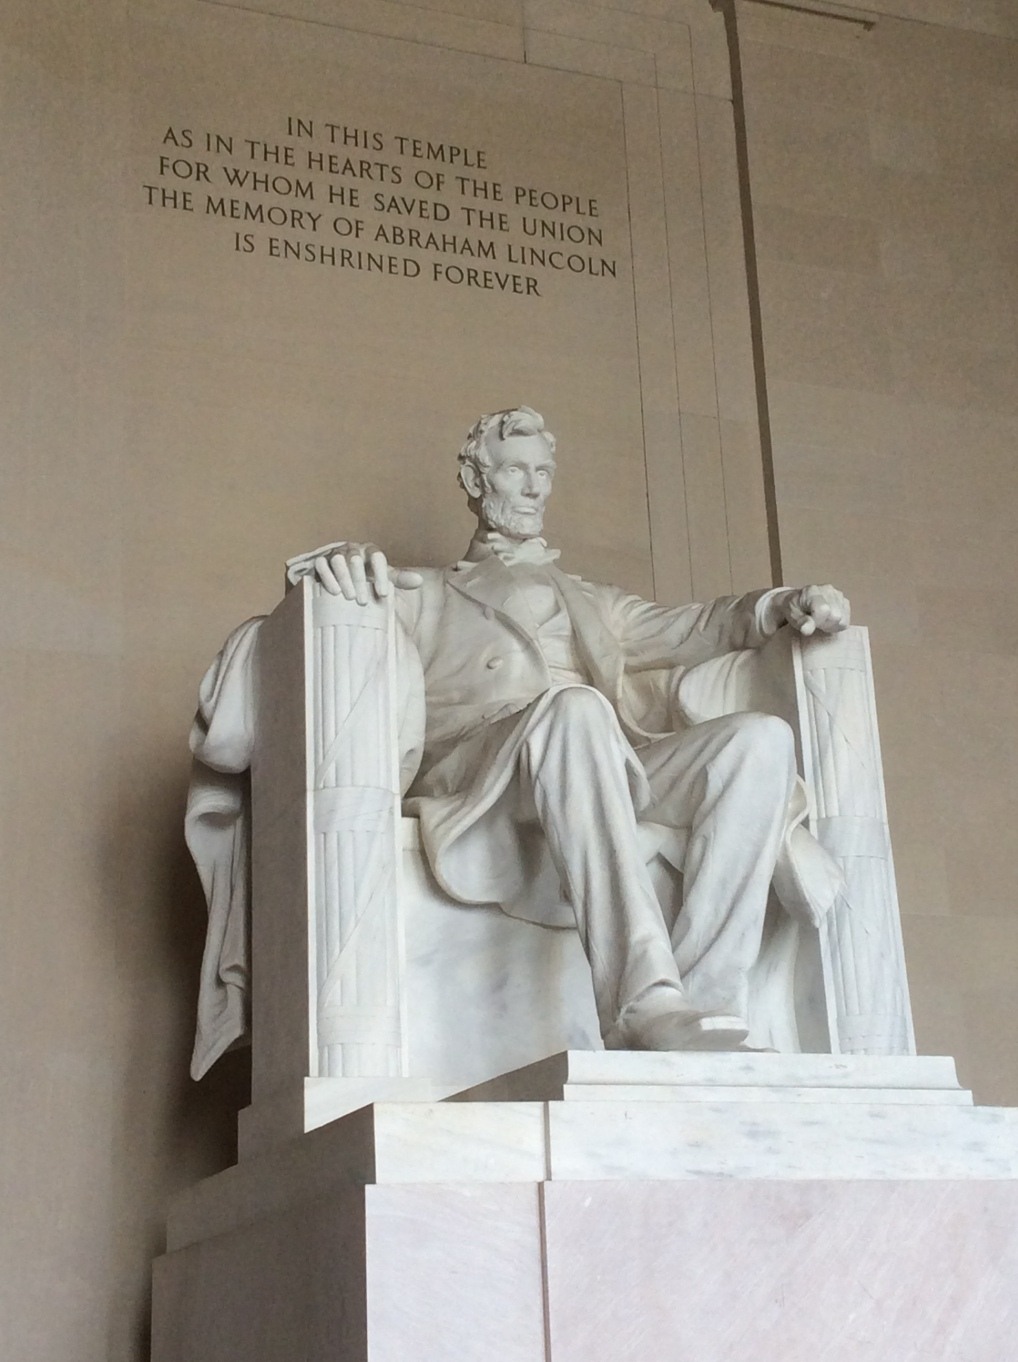 Sculpture of Abraham Lincoln in the Lincoln Memorial, Washington DC, photo 2015 by Amy Cools